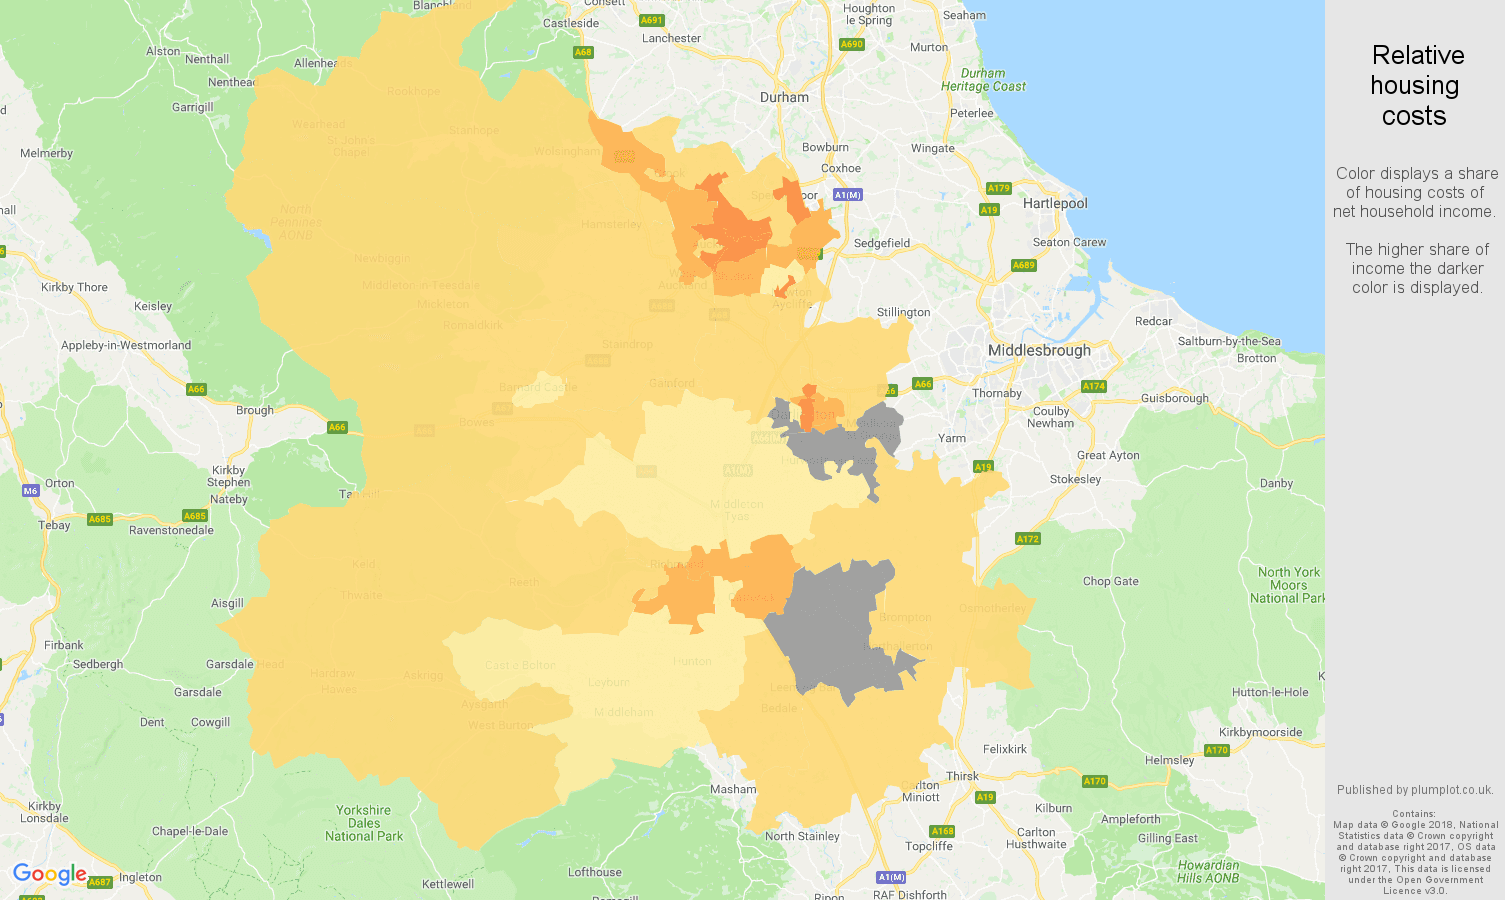 Darlington relative housing costs map